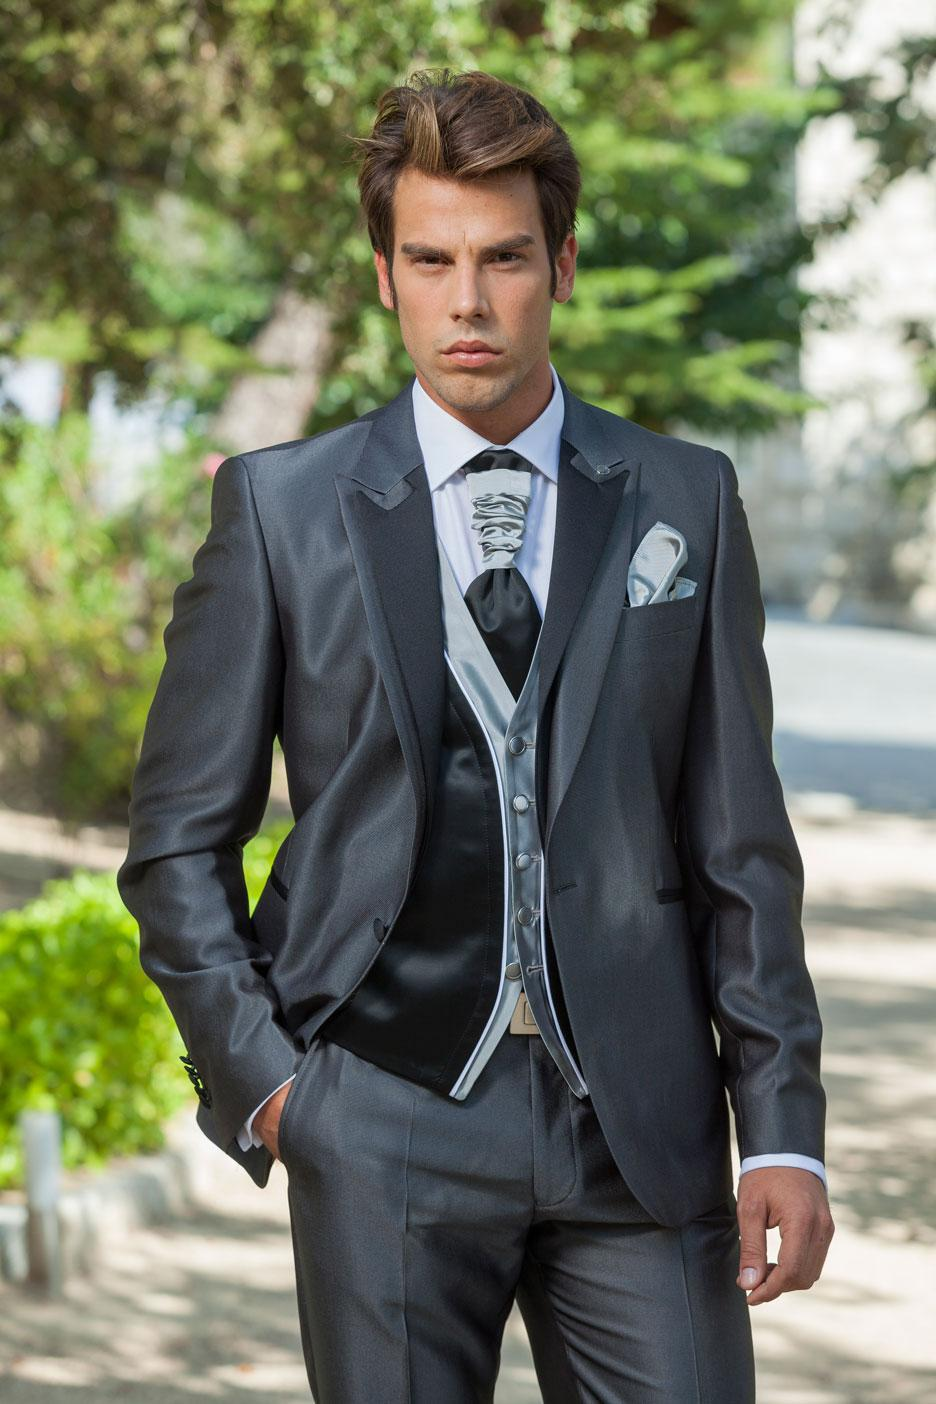 Men Suits For Prom - Ocodea.com